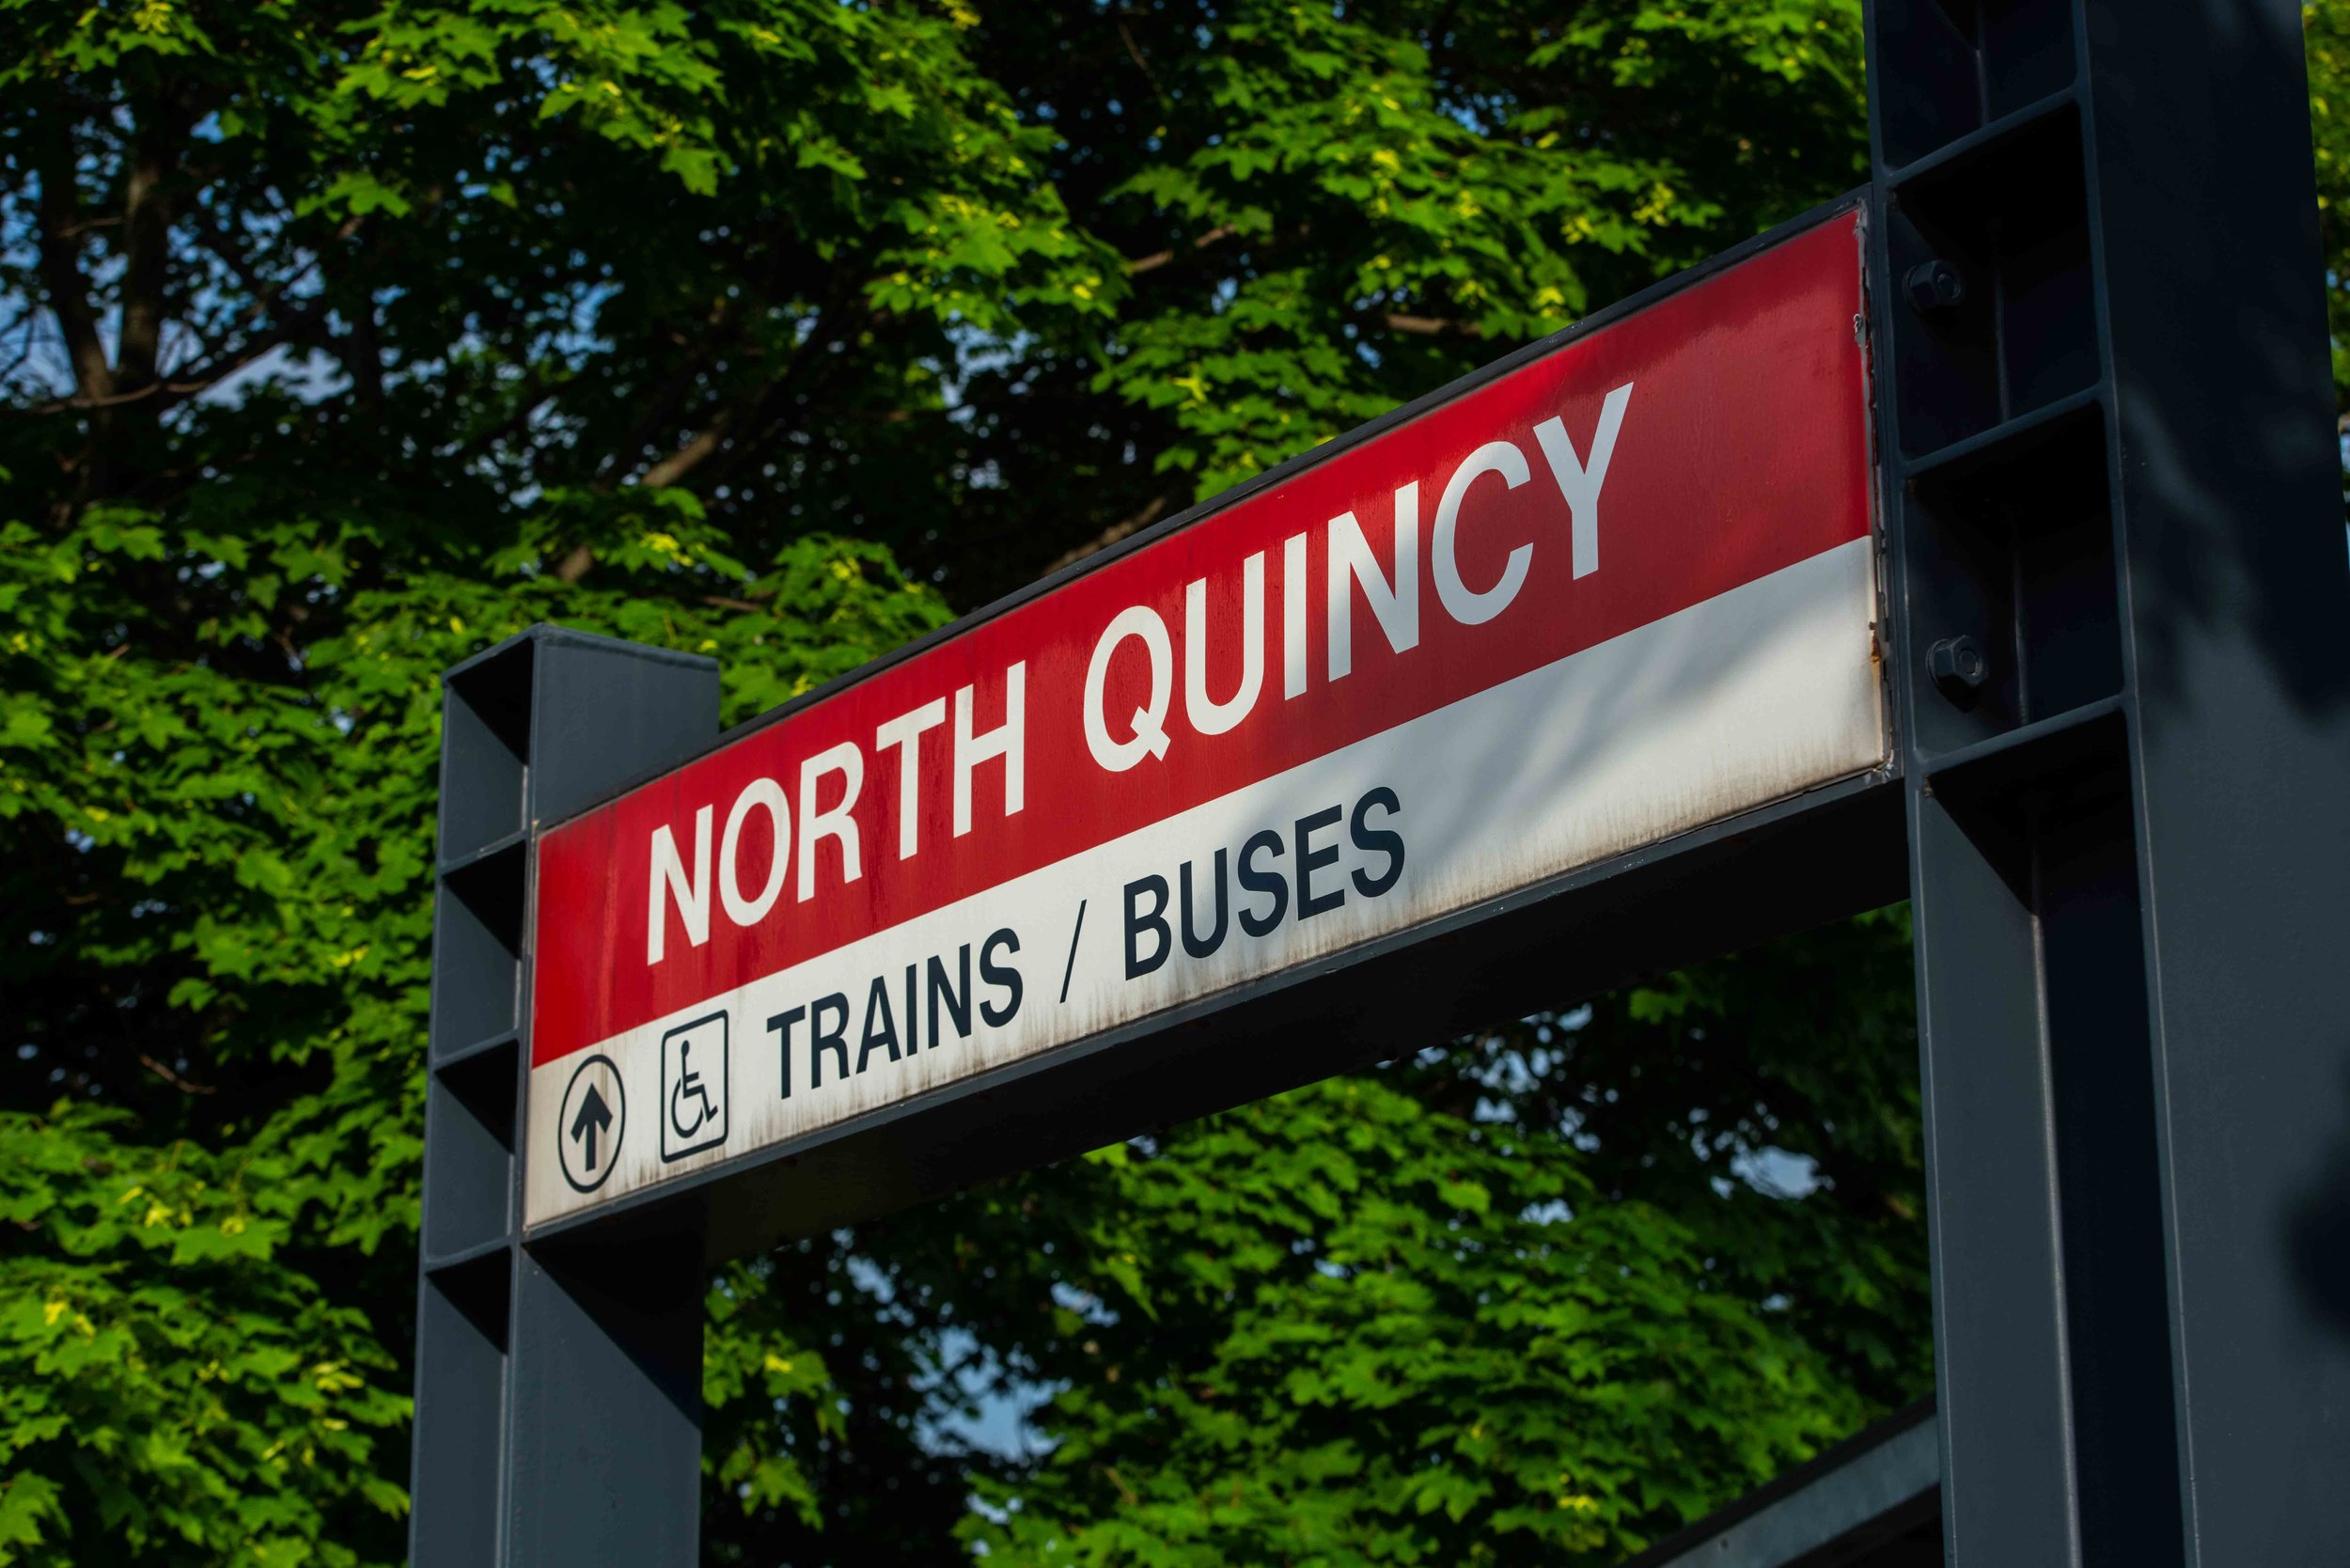 North Quincy T Station Detail (2).jpg